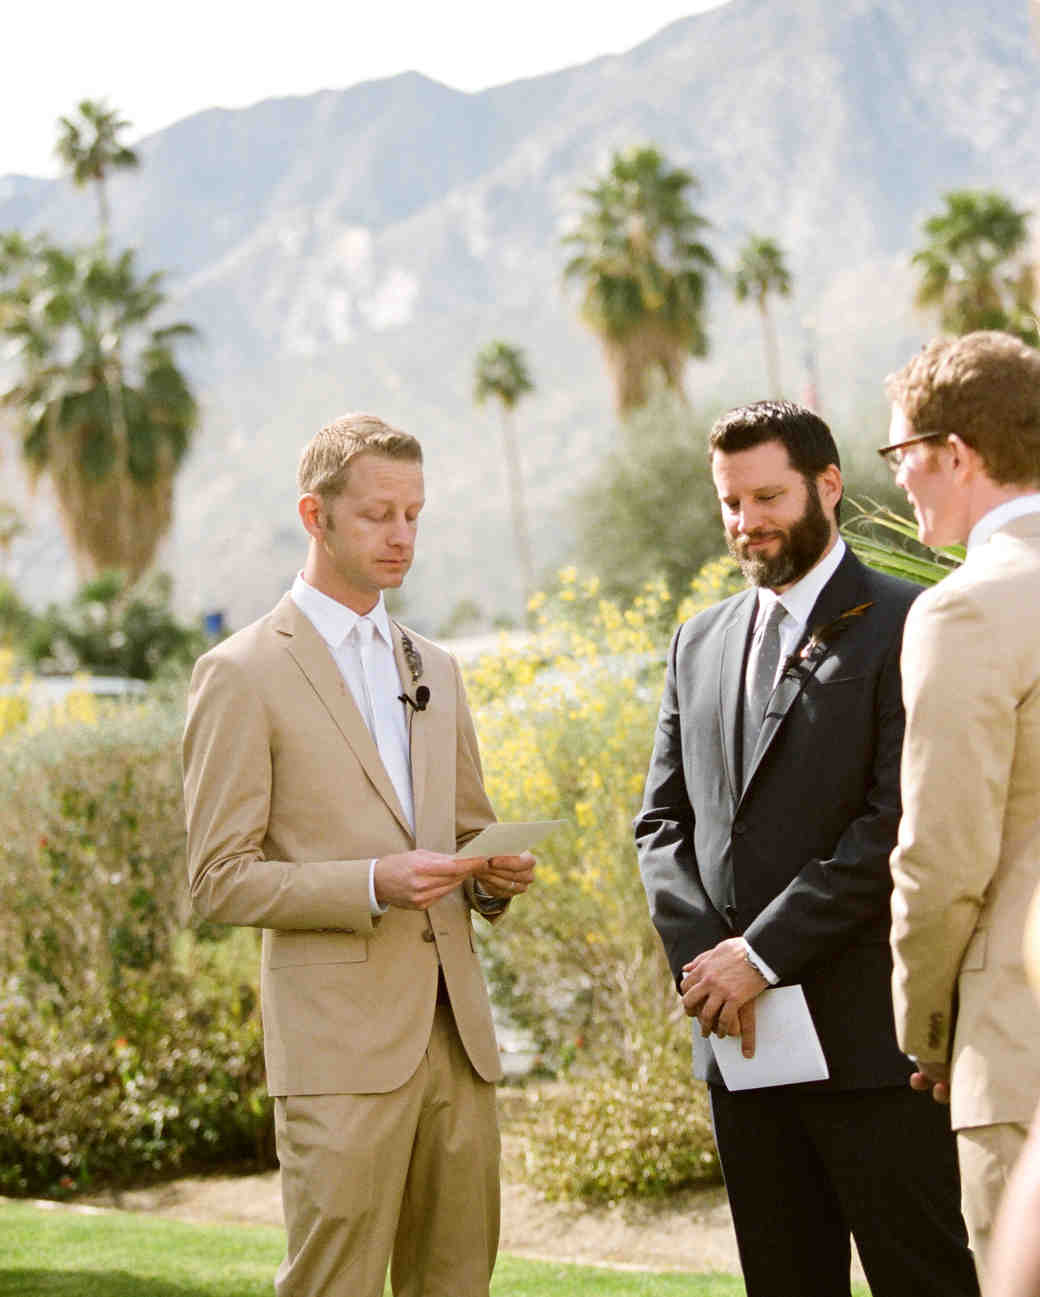 41 Sweet Moments From Same-Sex Weddings